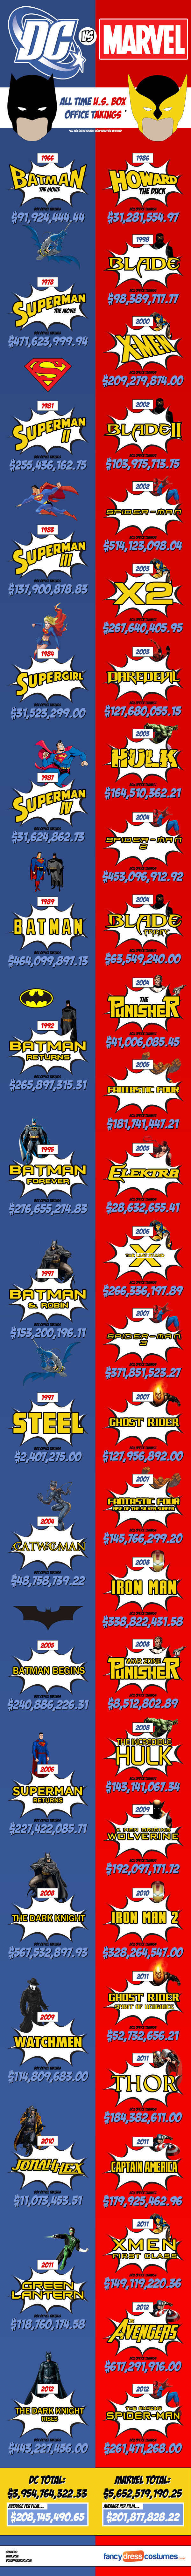 Marvel vs DC Comics Infografía